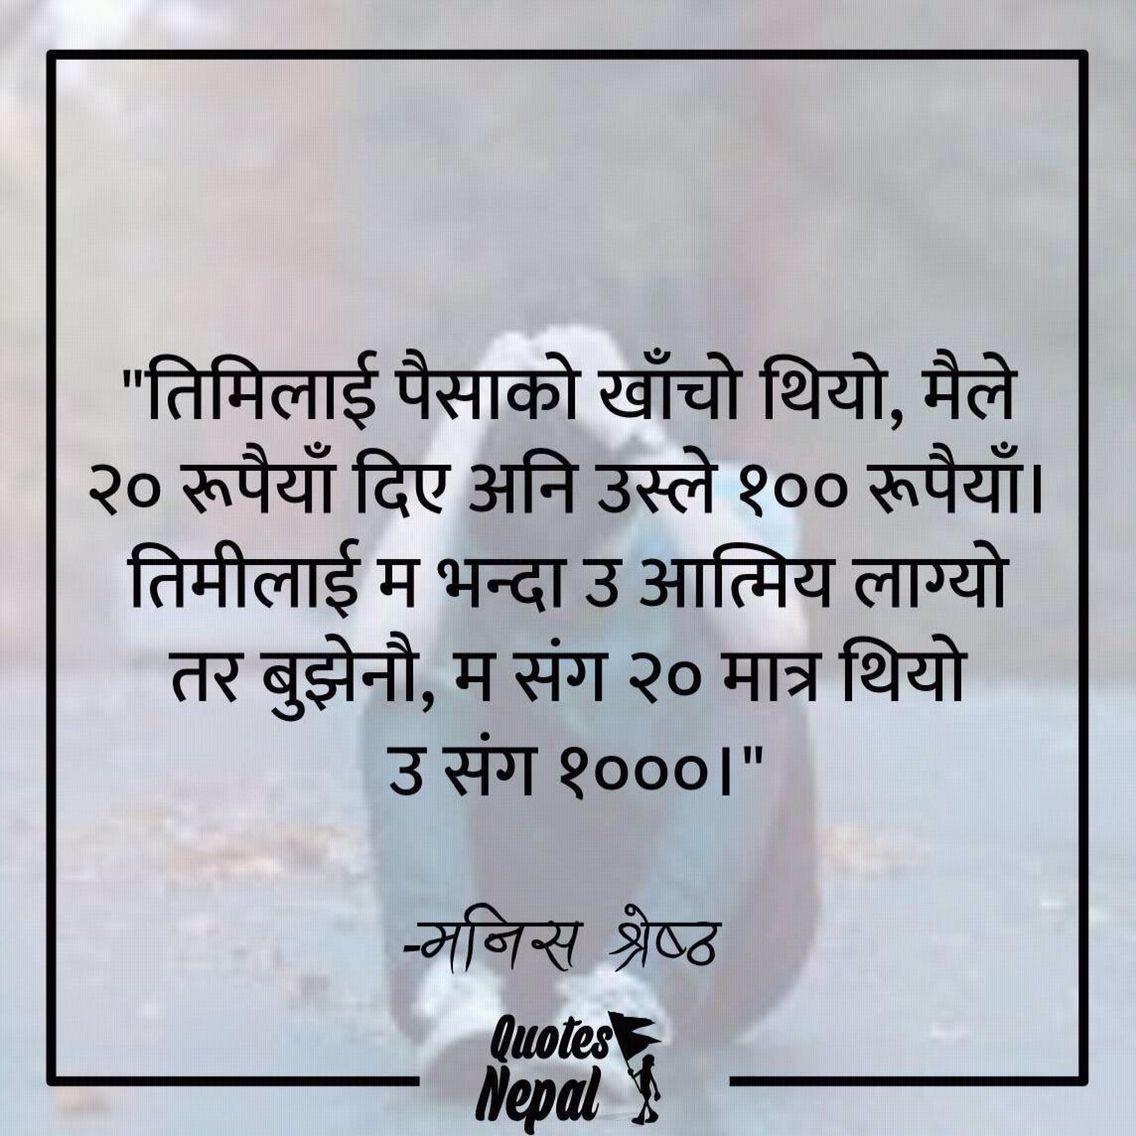 A Quote In Nepali (With Images)